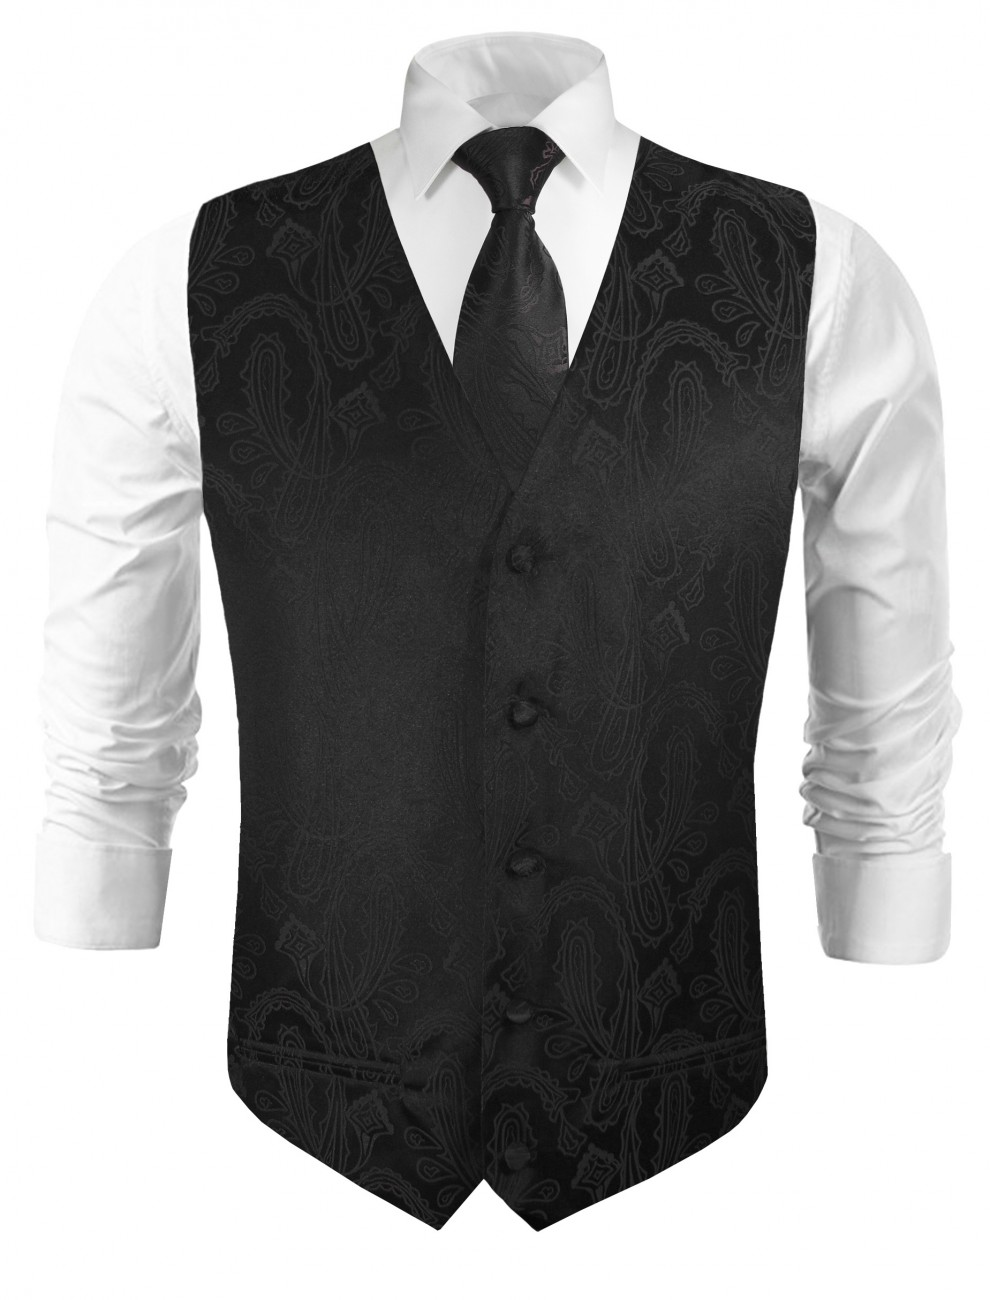 Wedding vest with necktie black paisley